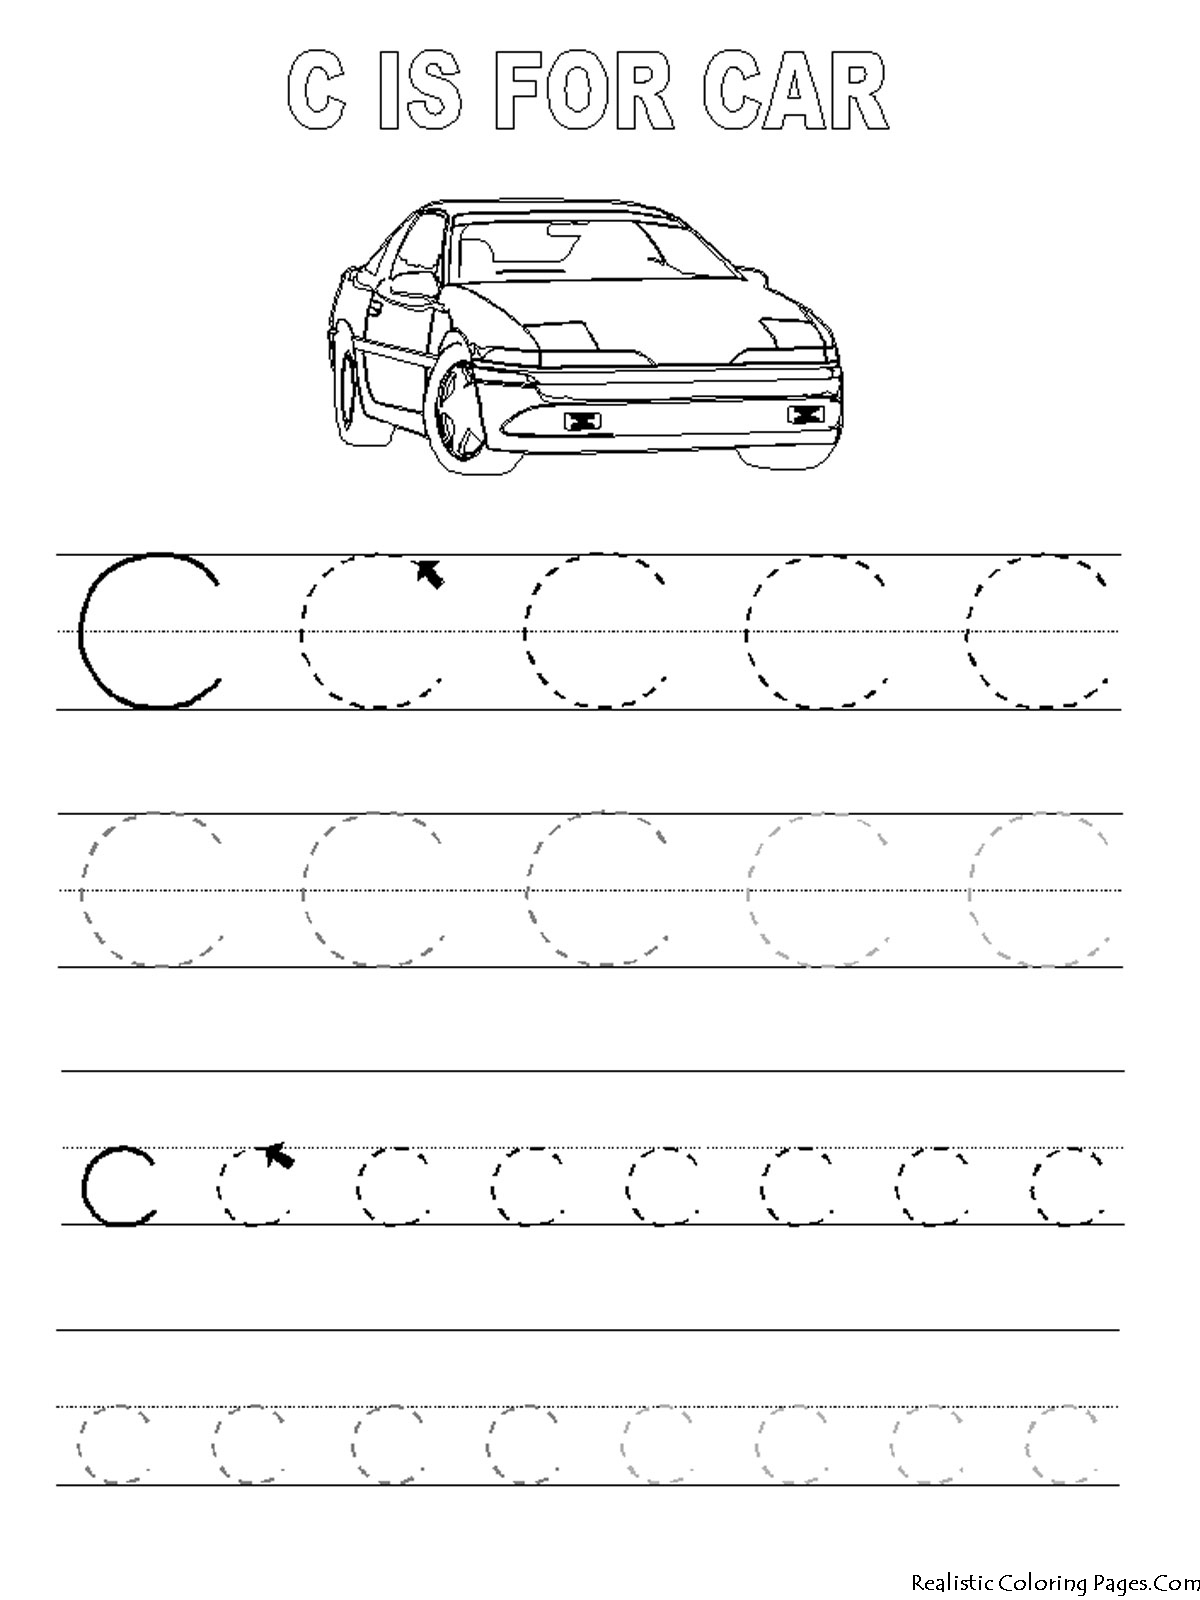 Coloring alphabet printouts - Free Tracing Coloring Pages To Print For Kids Download Print And Color